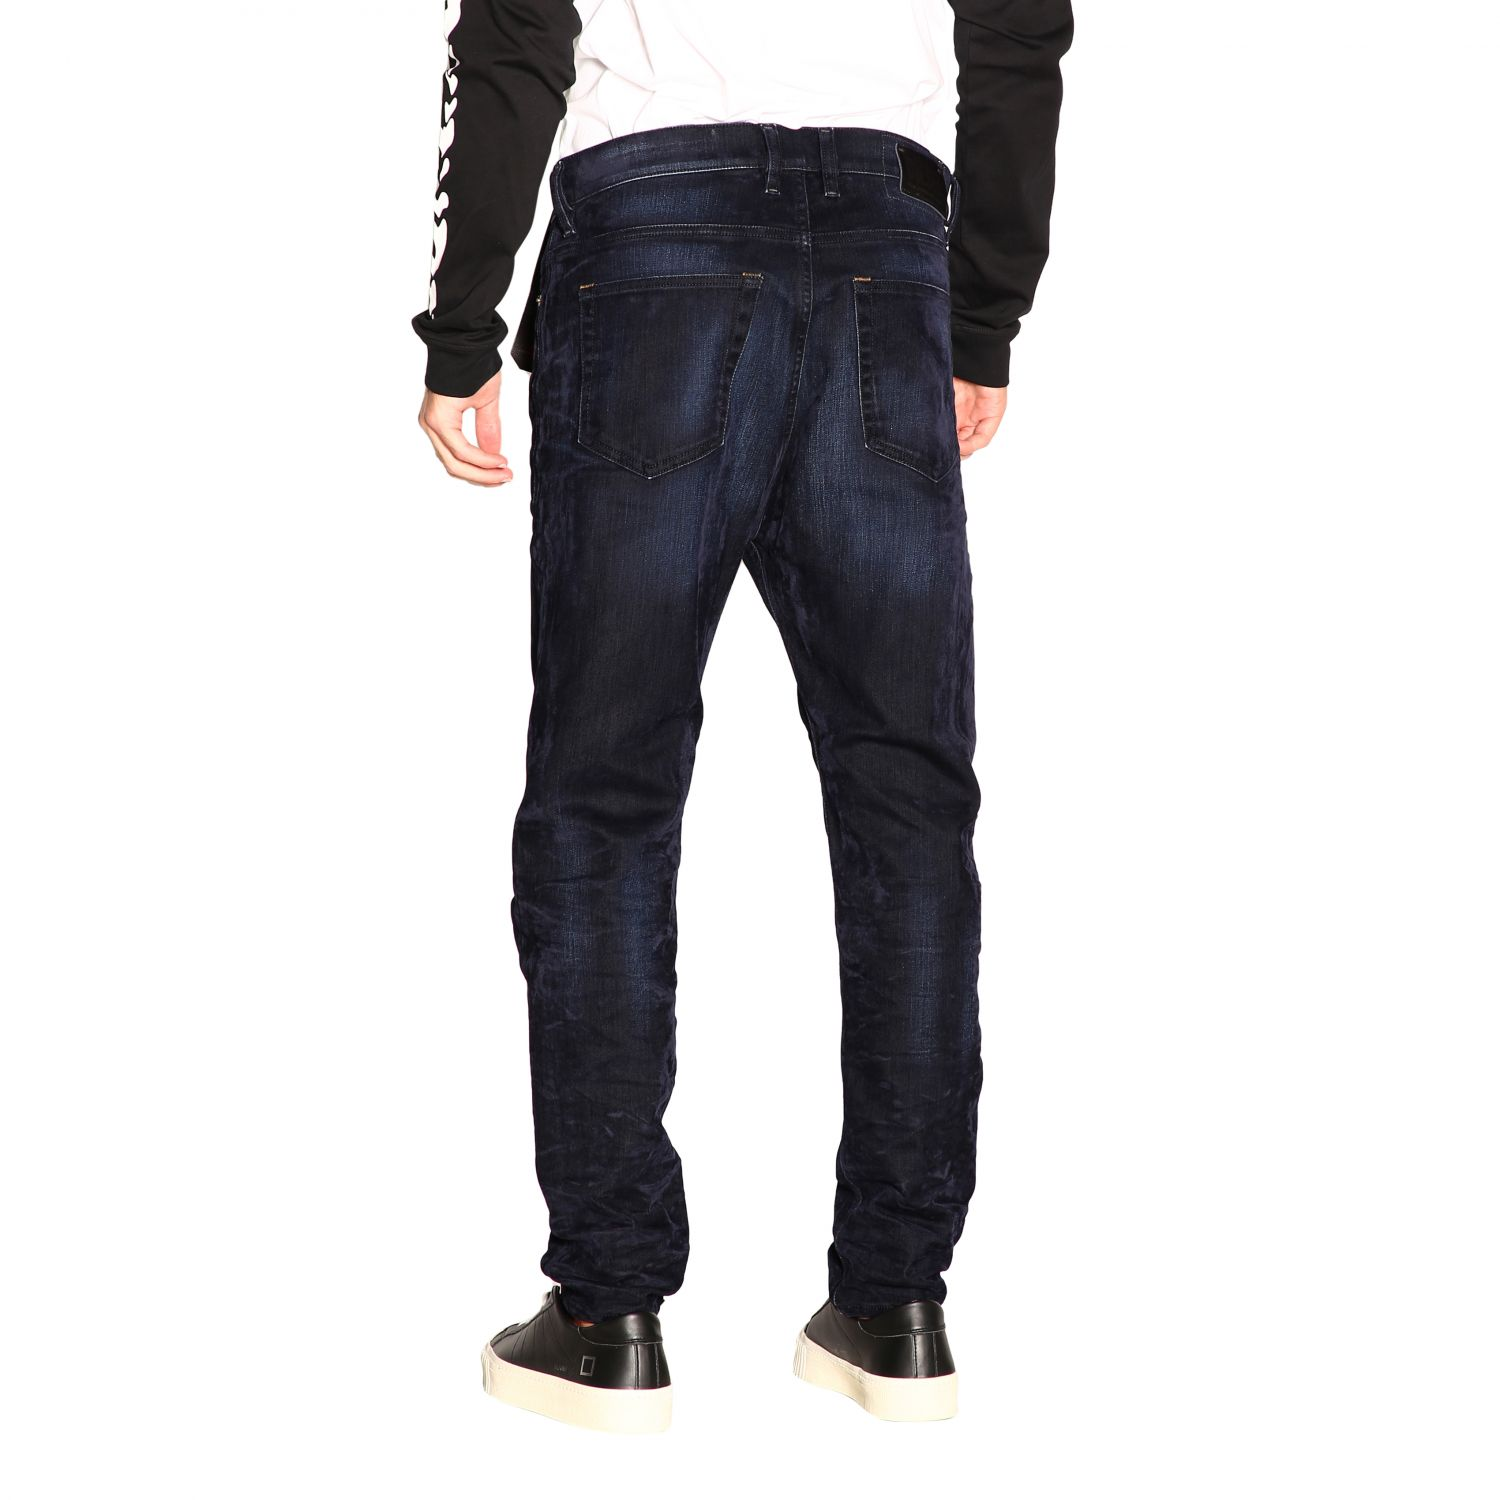 Jeans Diesel: Diesel D-vider Stretch jeans with low crotch and velvet treatment blue 3